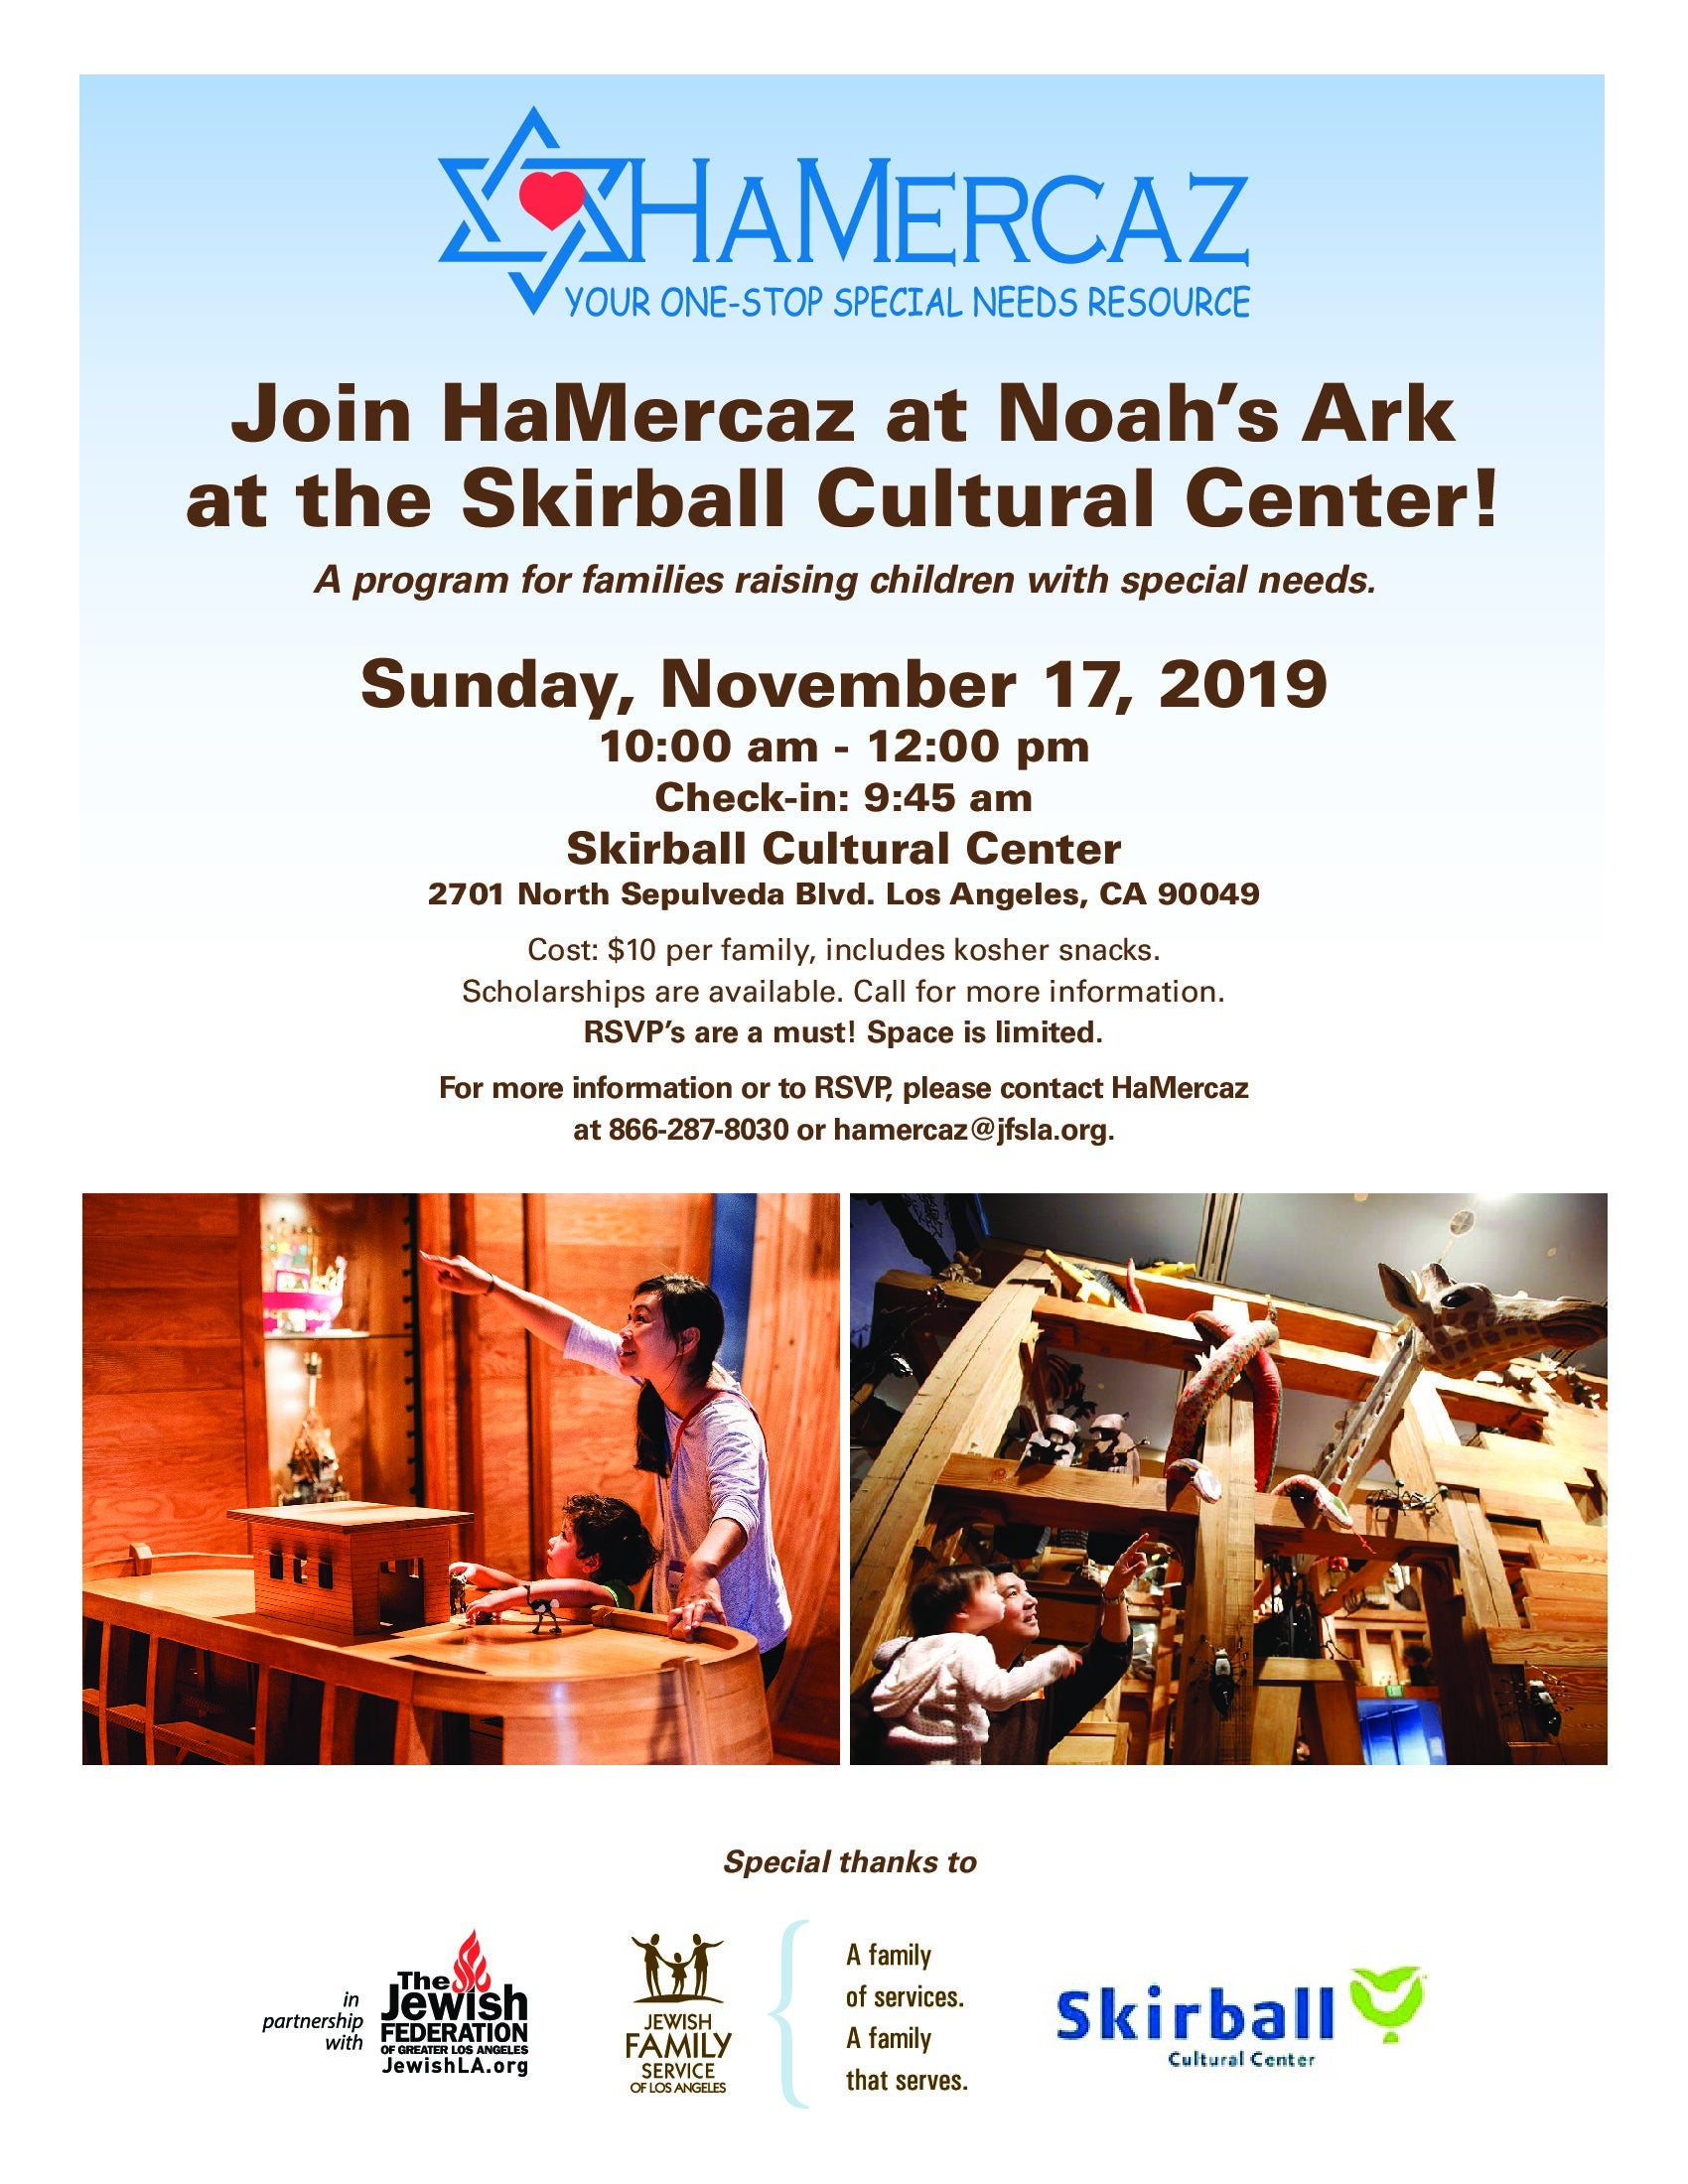 HaMercaz/Noah's Ark @ Skirball | HaMercaz | The Jewish Federation of Greater Los Angeles